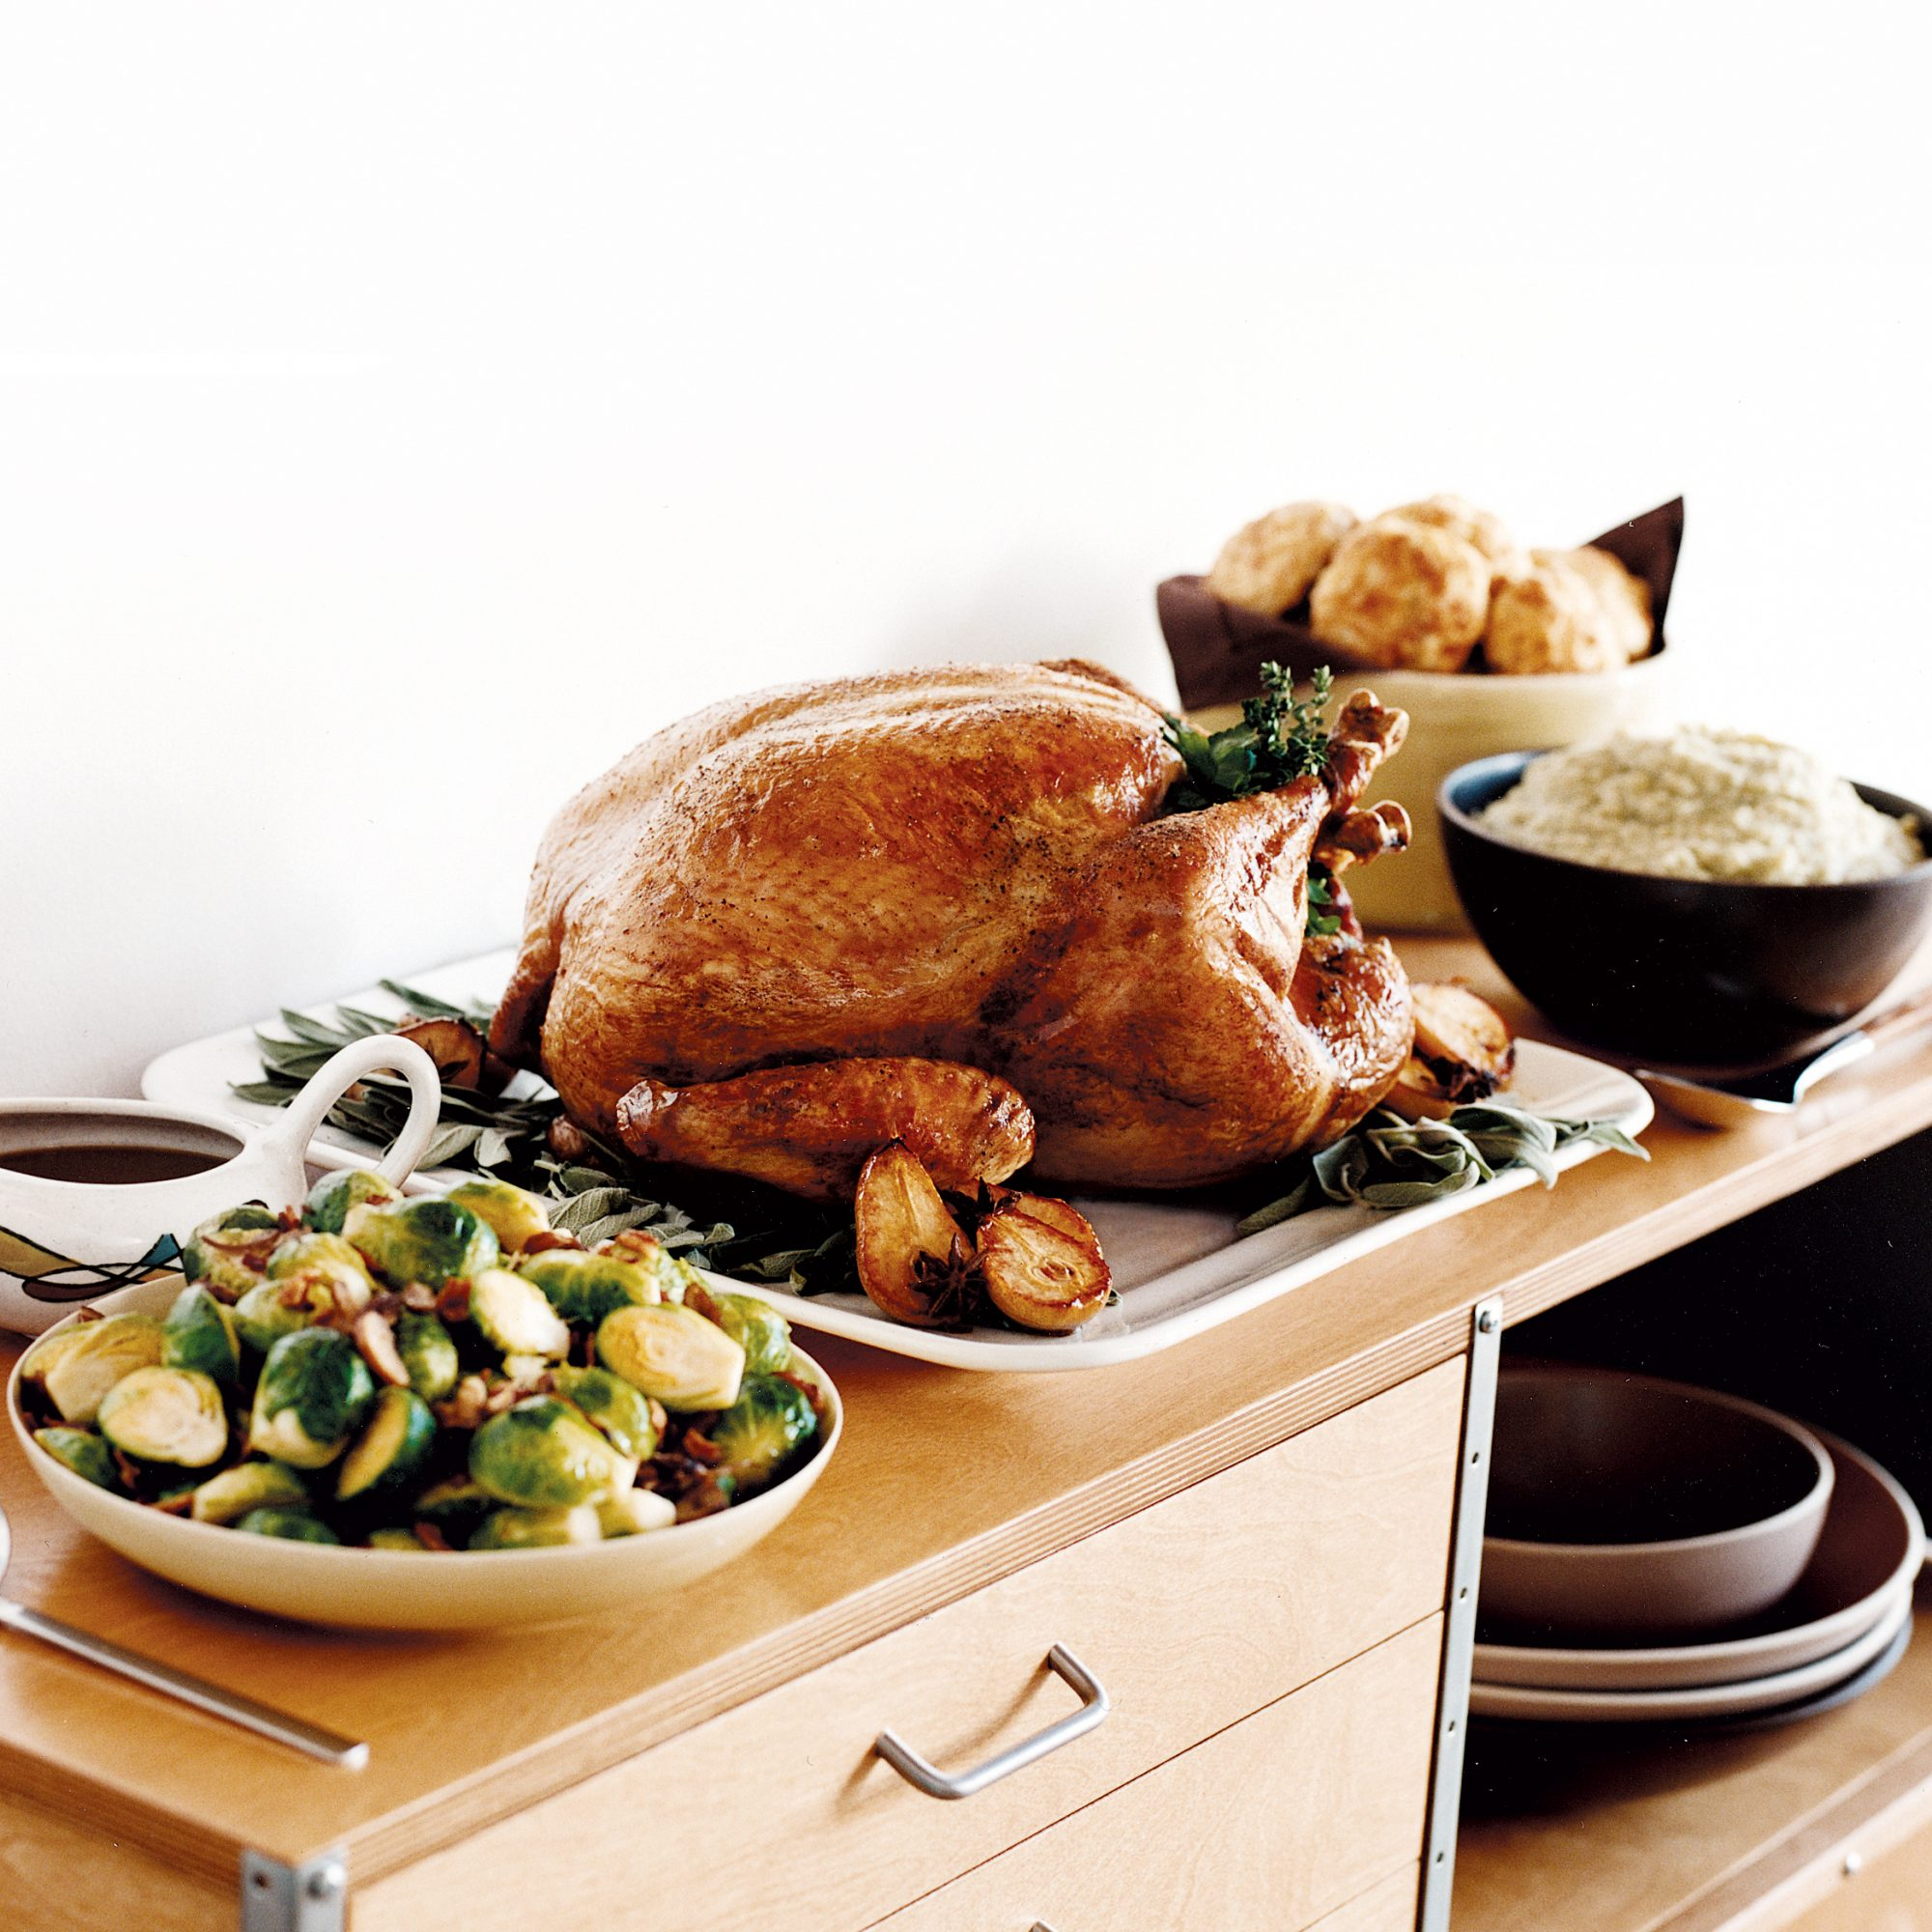 200411-r-herb-roasted-turkey.jpg